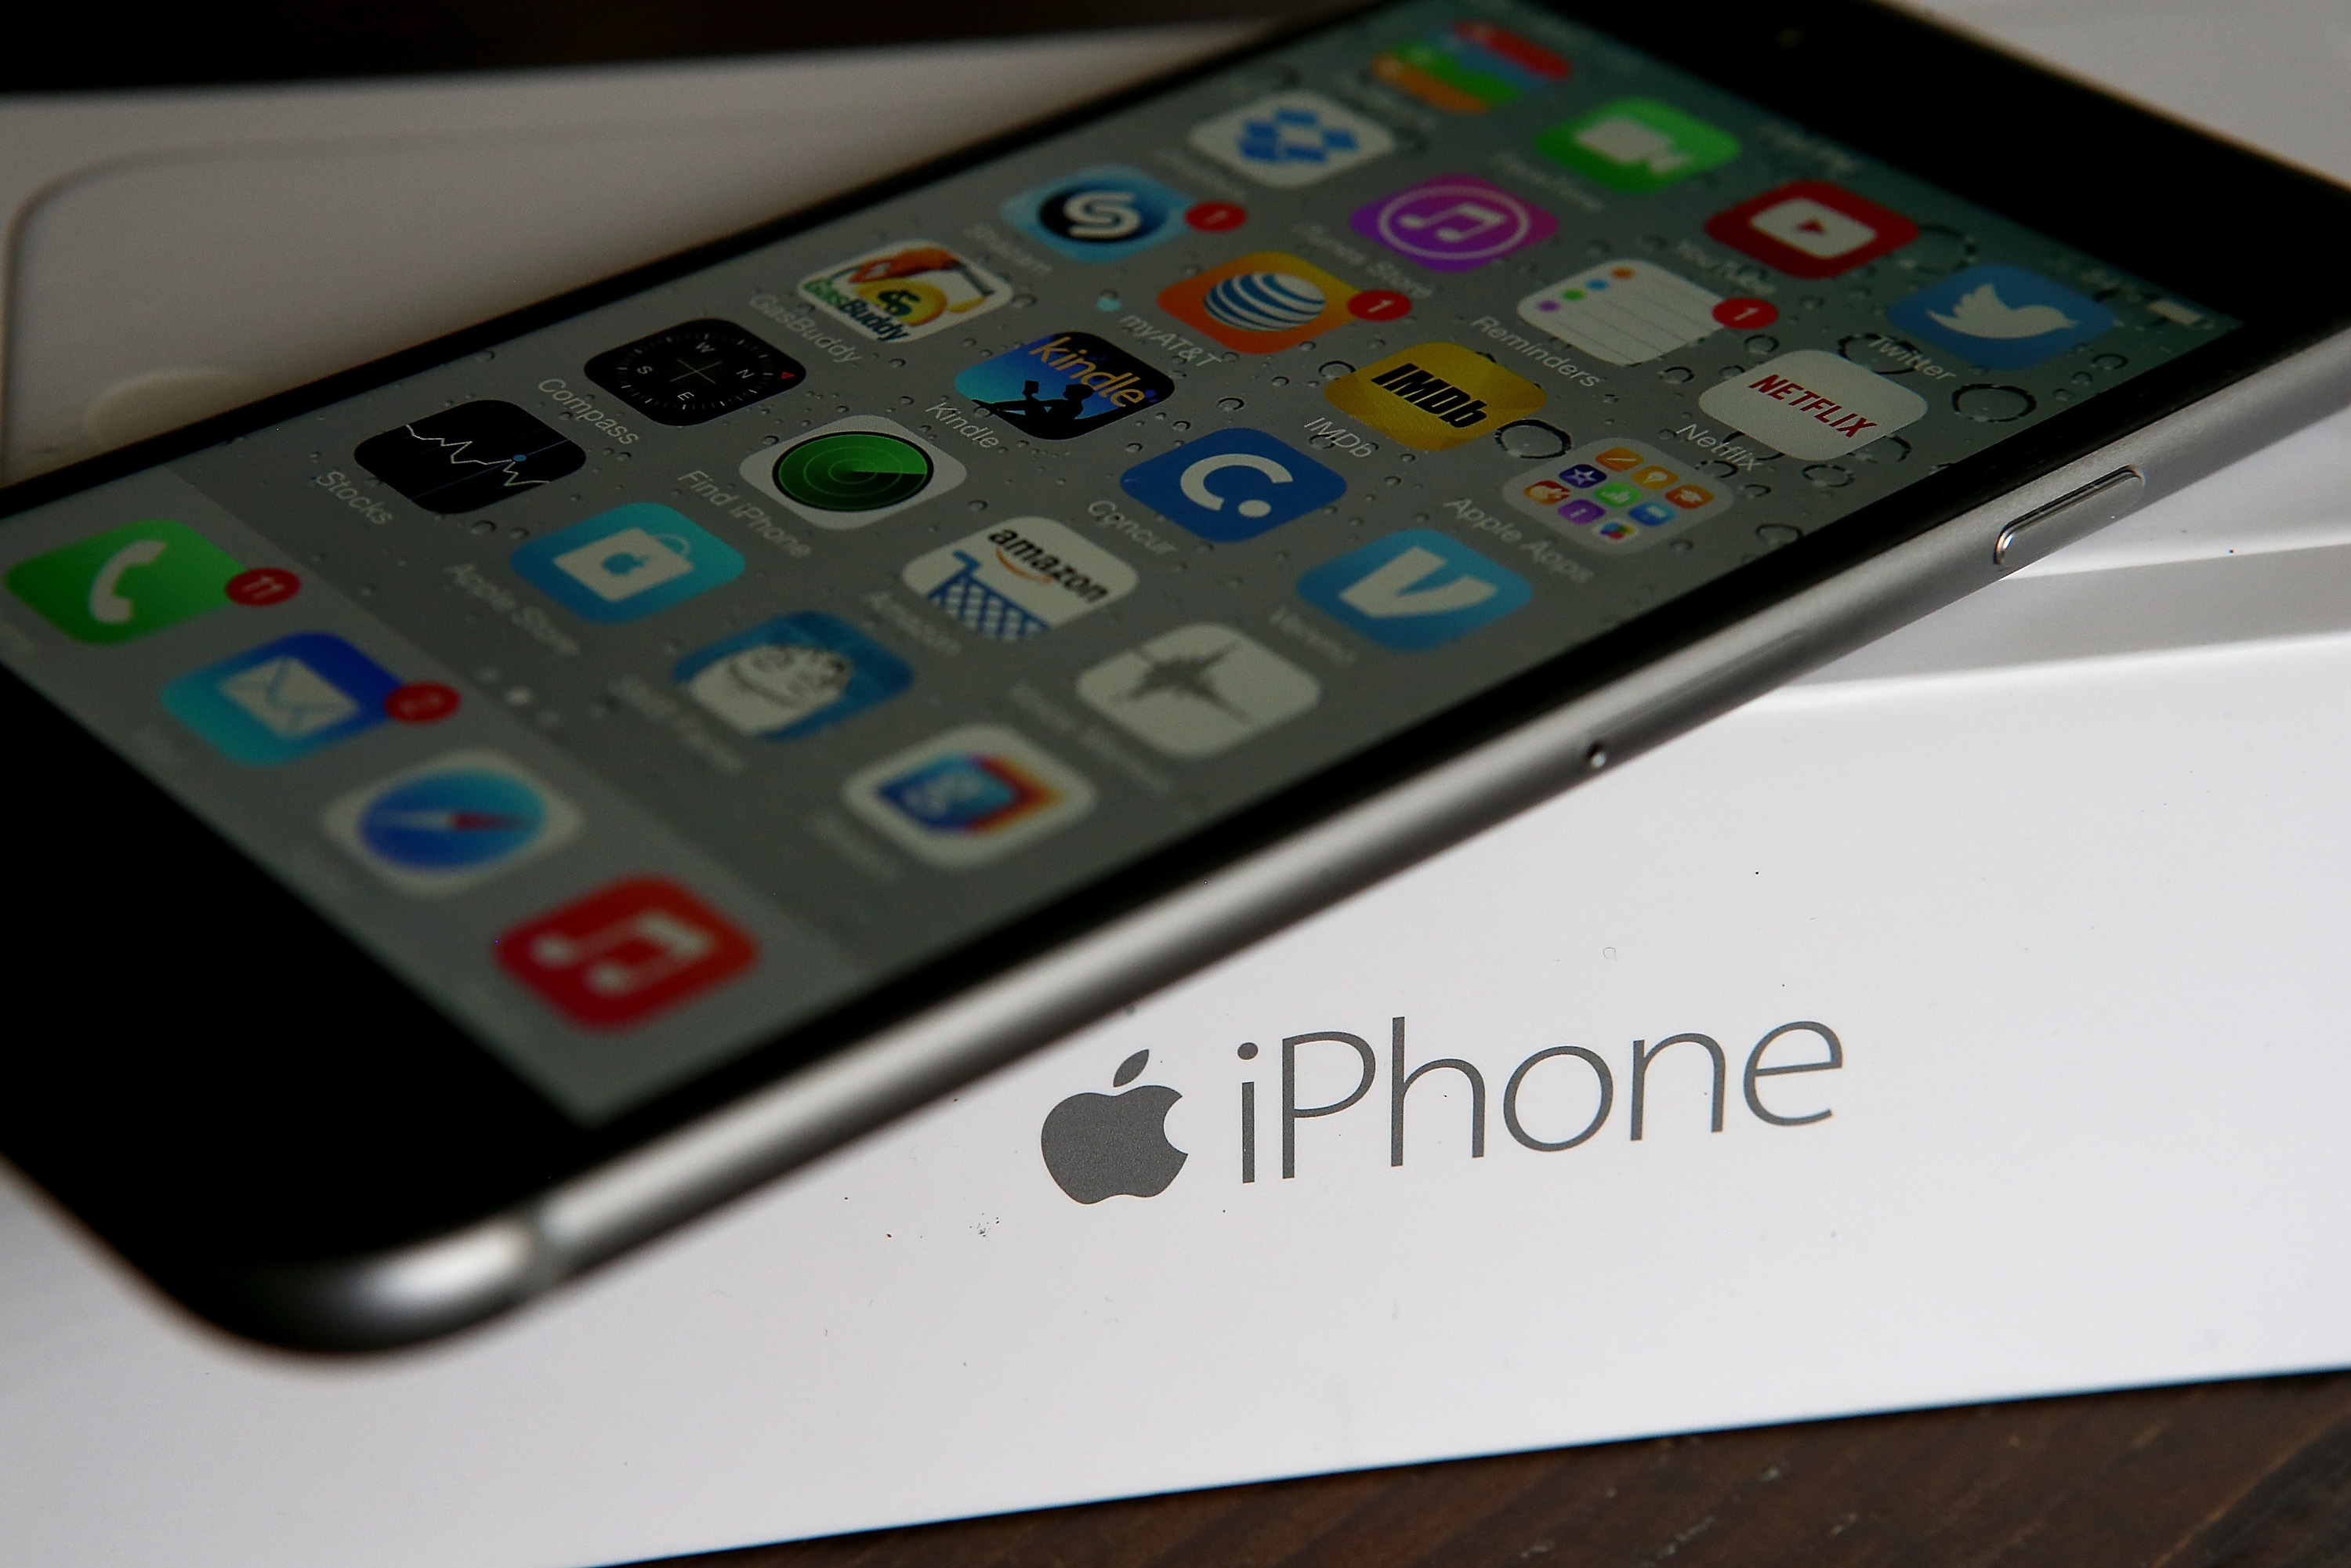 Apple Inc. reported huge first quarter earnings that were fueled by strong iPhone sales with revenue of $74.6 billion.